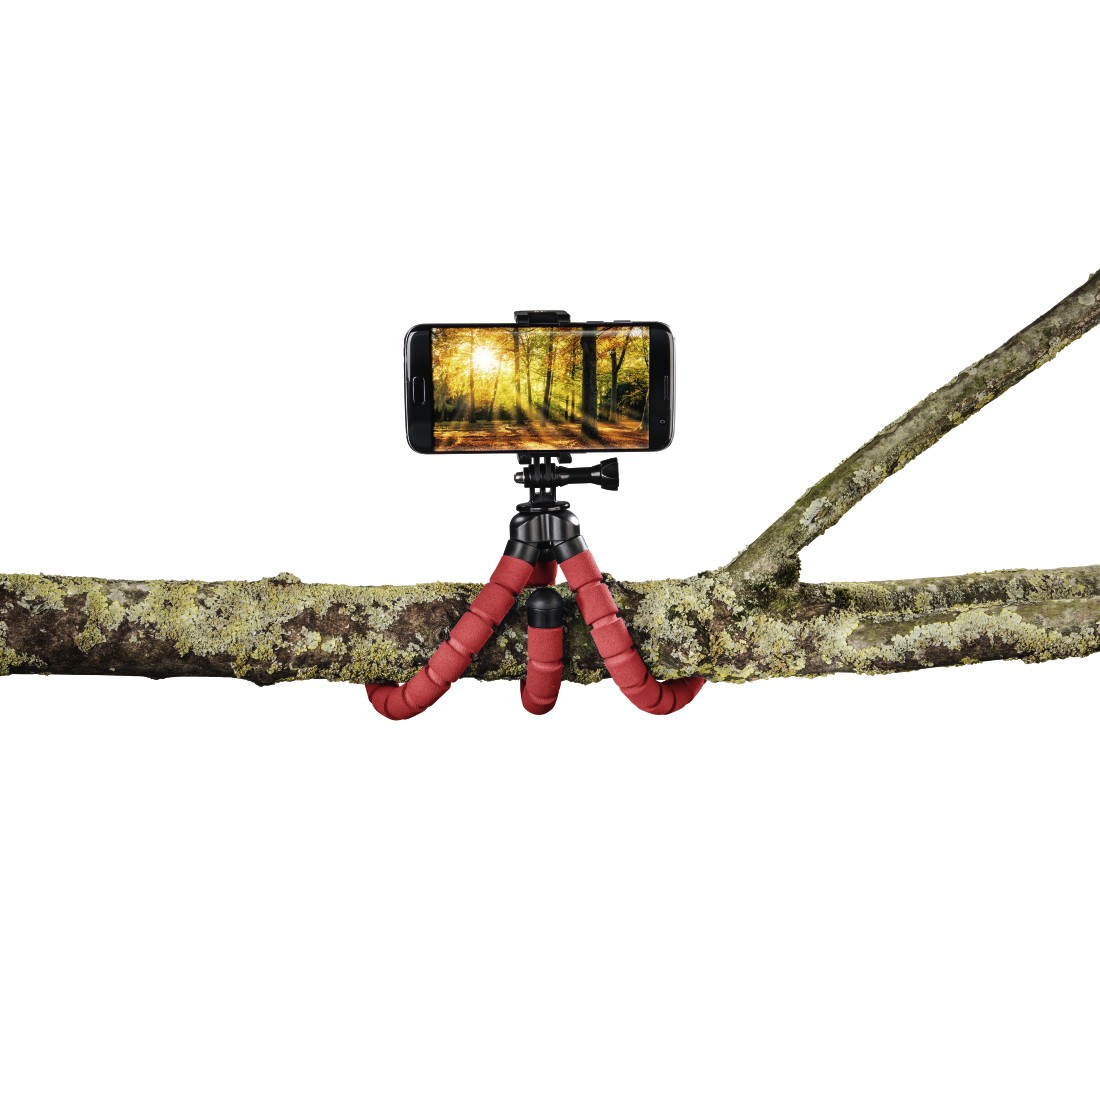 awx High-Res Appliance - Hama, Flex Tripod for Smartphone and GoPro, 26 cm, red